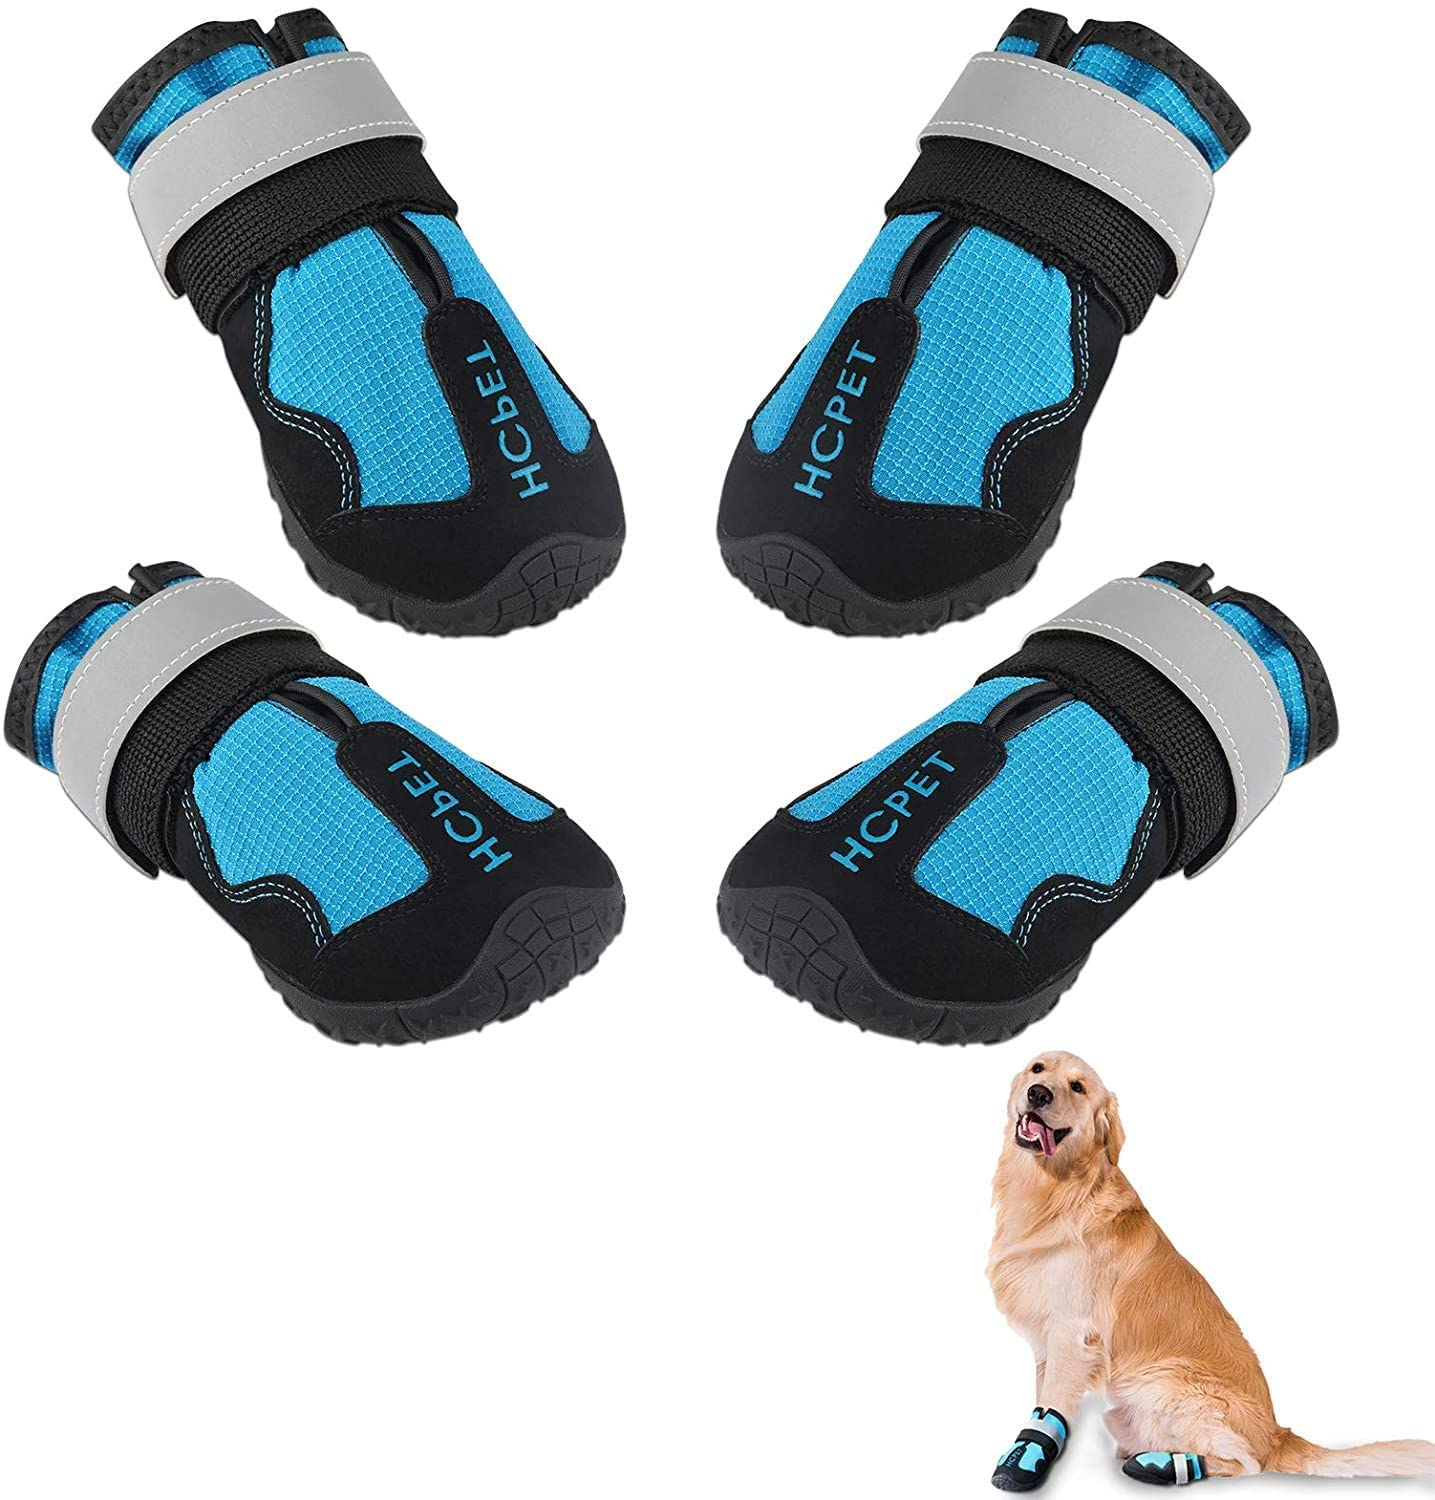 Trevelyan 4 Pcs Dog Boots, Outdoor Waterproof Soft Dog Shoes with Reflective Strip and Adjustable Straps Rugged Anti-Slip Sole